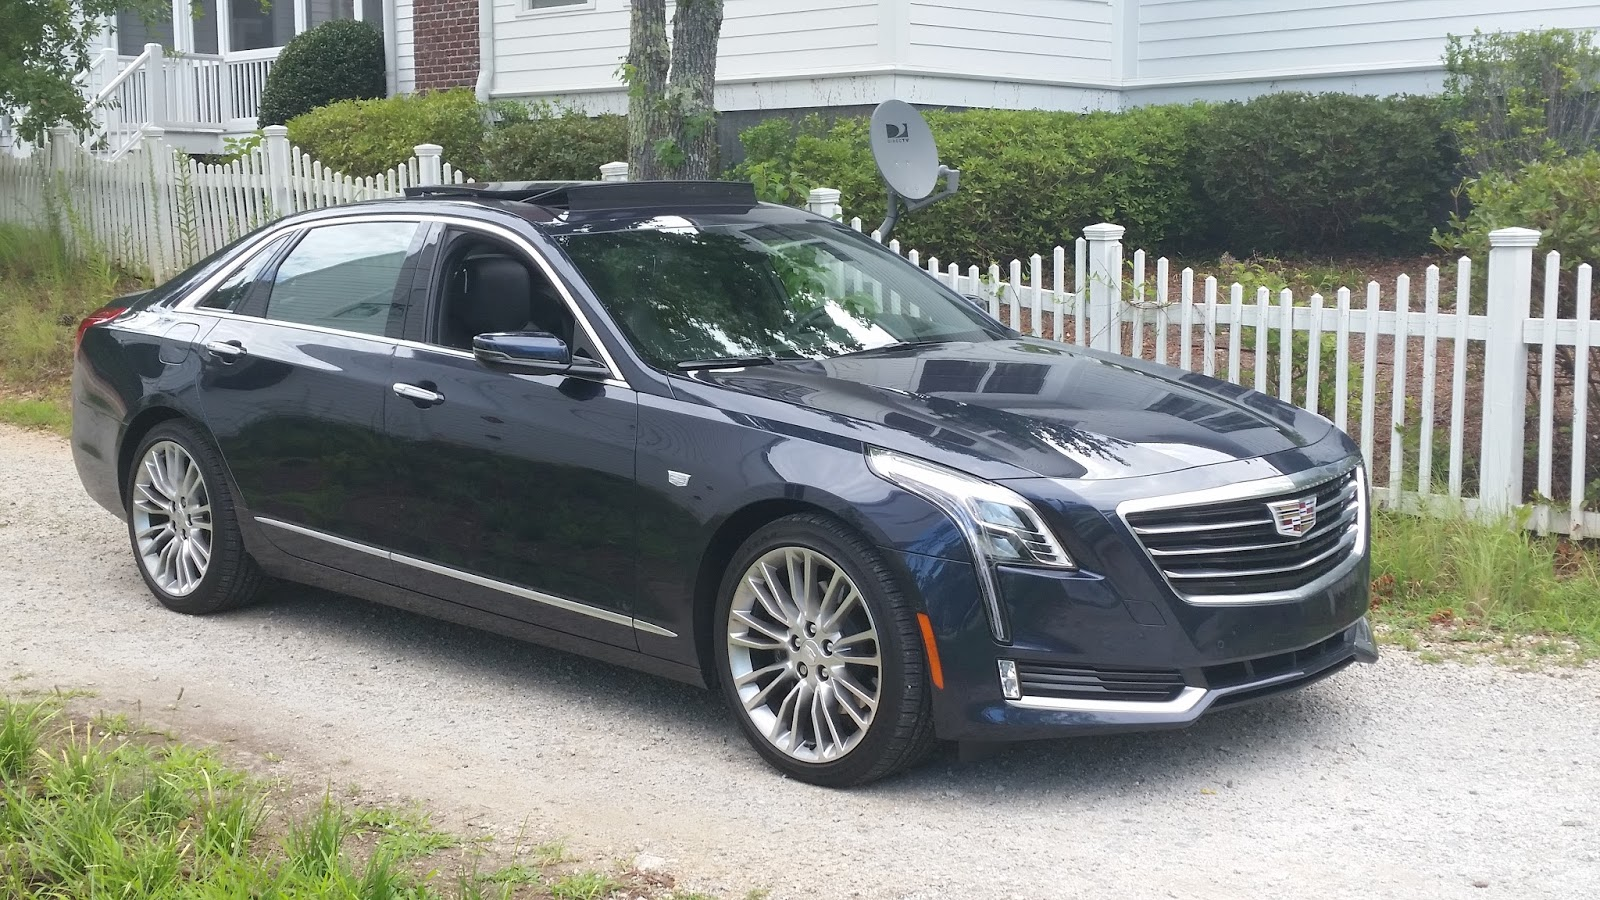 2016 Cadillac CT6 Premium Luxury AWD: Could This Be The Brandu0027s Much Needed  Seville From The Early 80s?